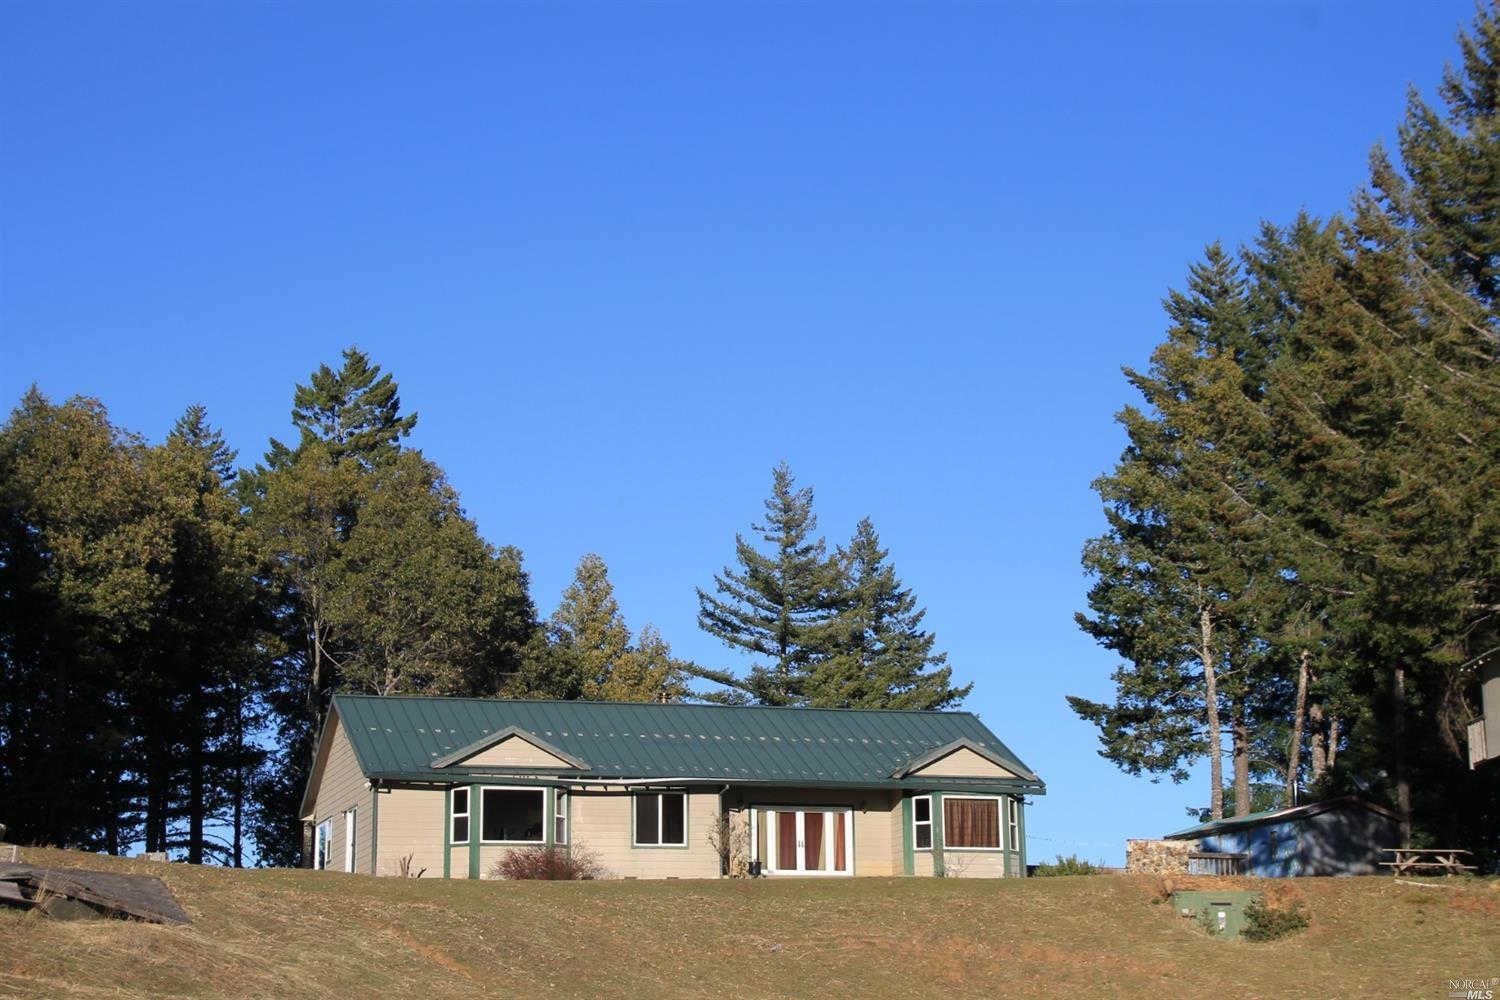 4300 Cahto Peak Drive, Laytonville, CA 95454 now has a new price of $749,000!